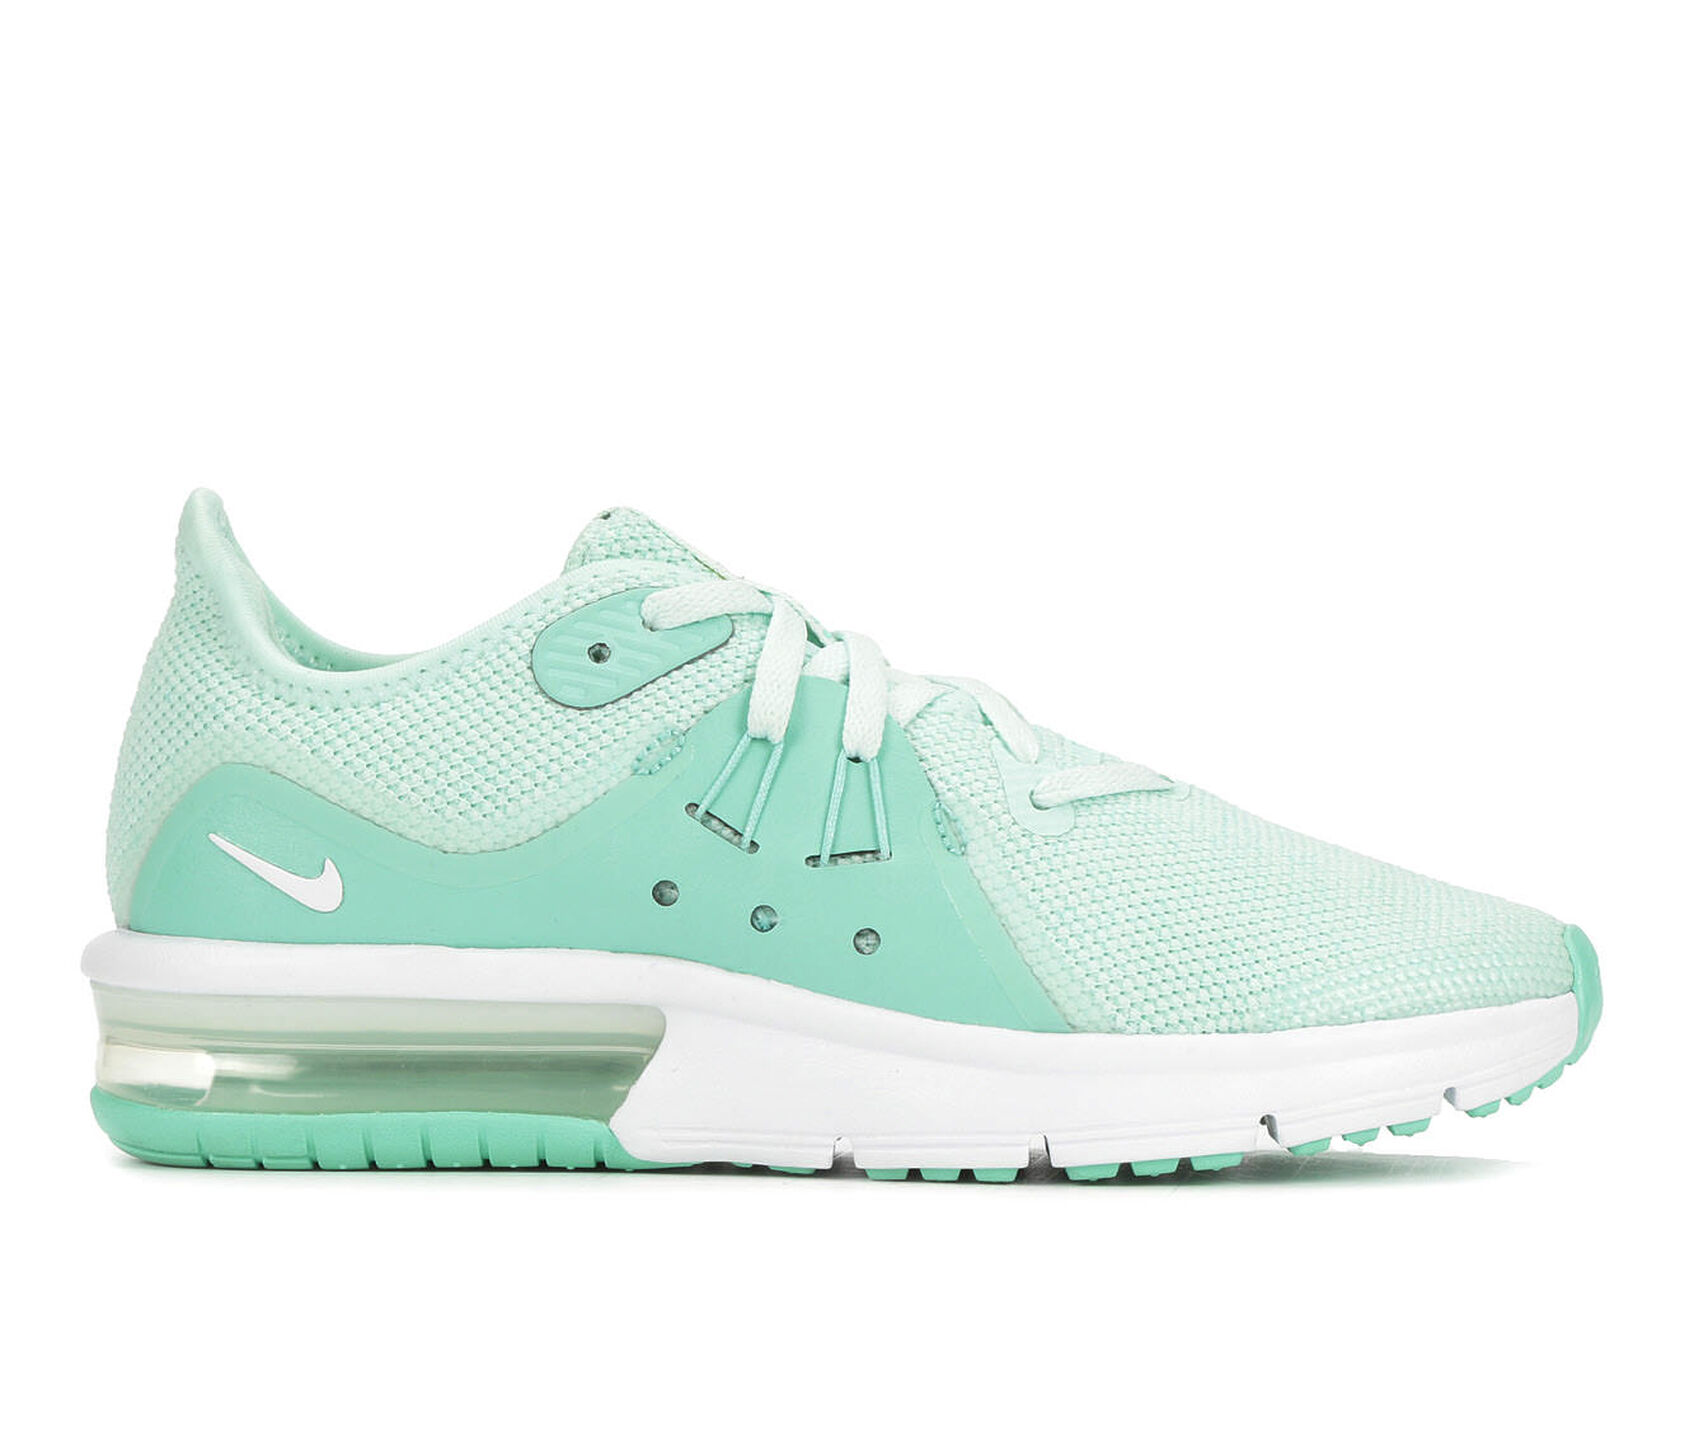 ... Nike Big Kid Air Max Sequent 3 Running Shoes. Carousel Controls Previous b5f8d8bede